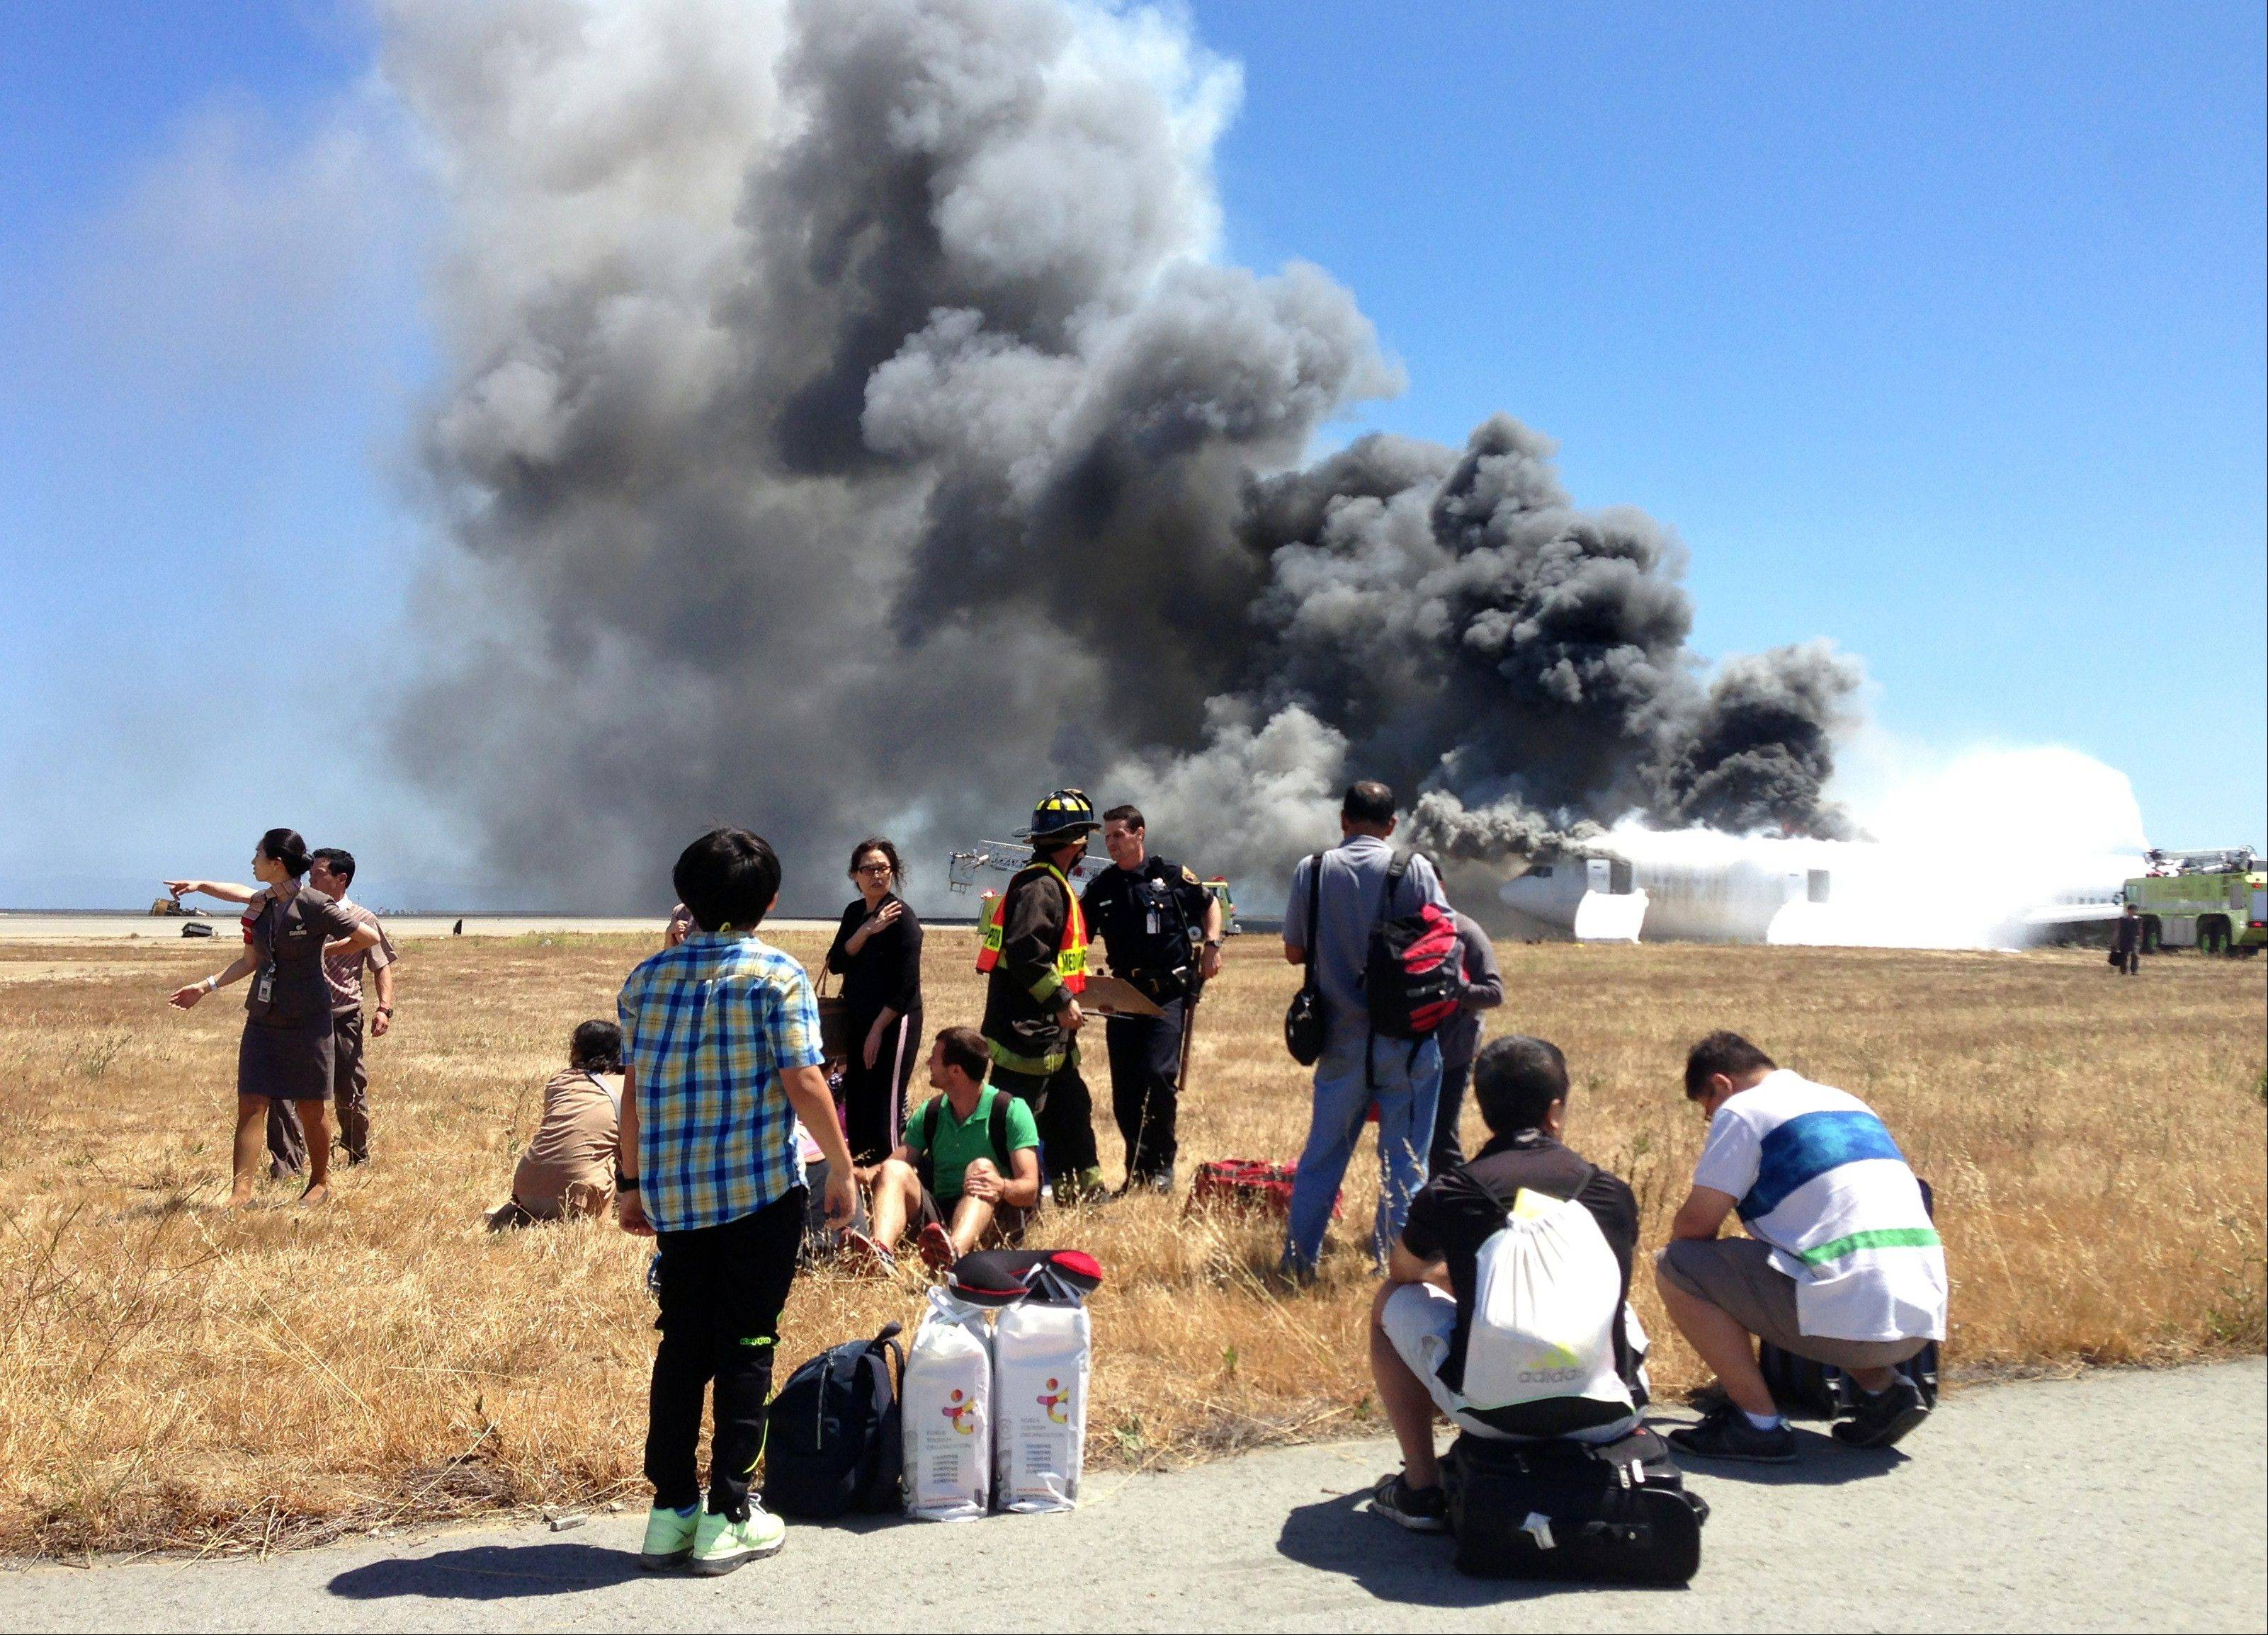 In this photo provided by passenger Benjamin Levy, passengers from Asiana Airlines flight 214, many with their luggage, are seen on the tarmac just moments after the plane crashed at San Francisco International Airport.